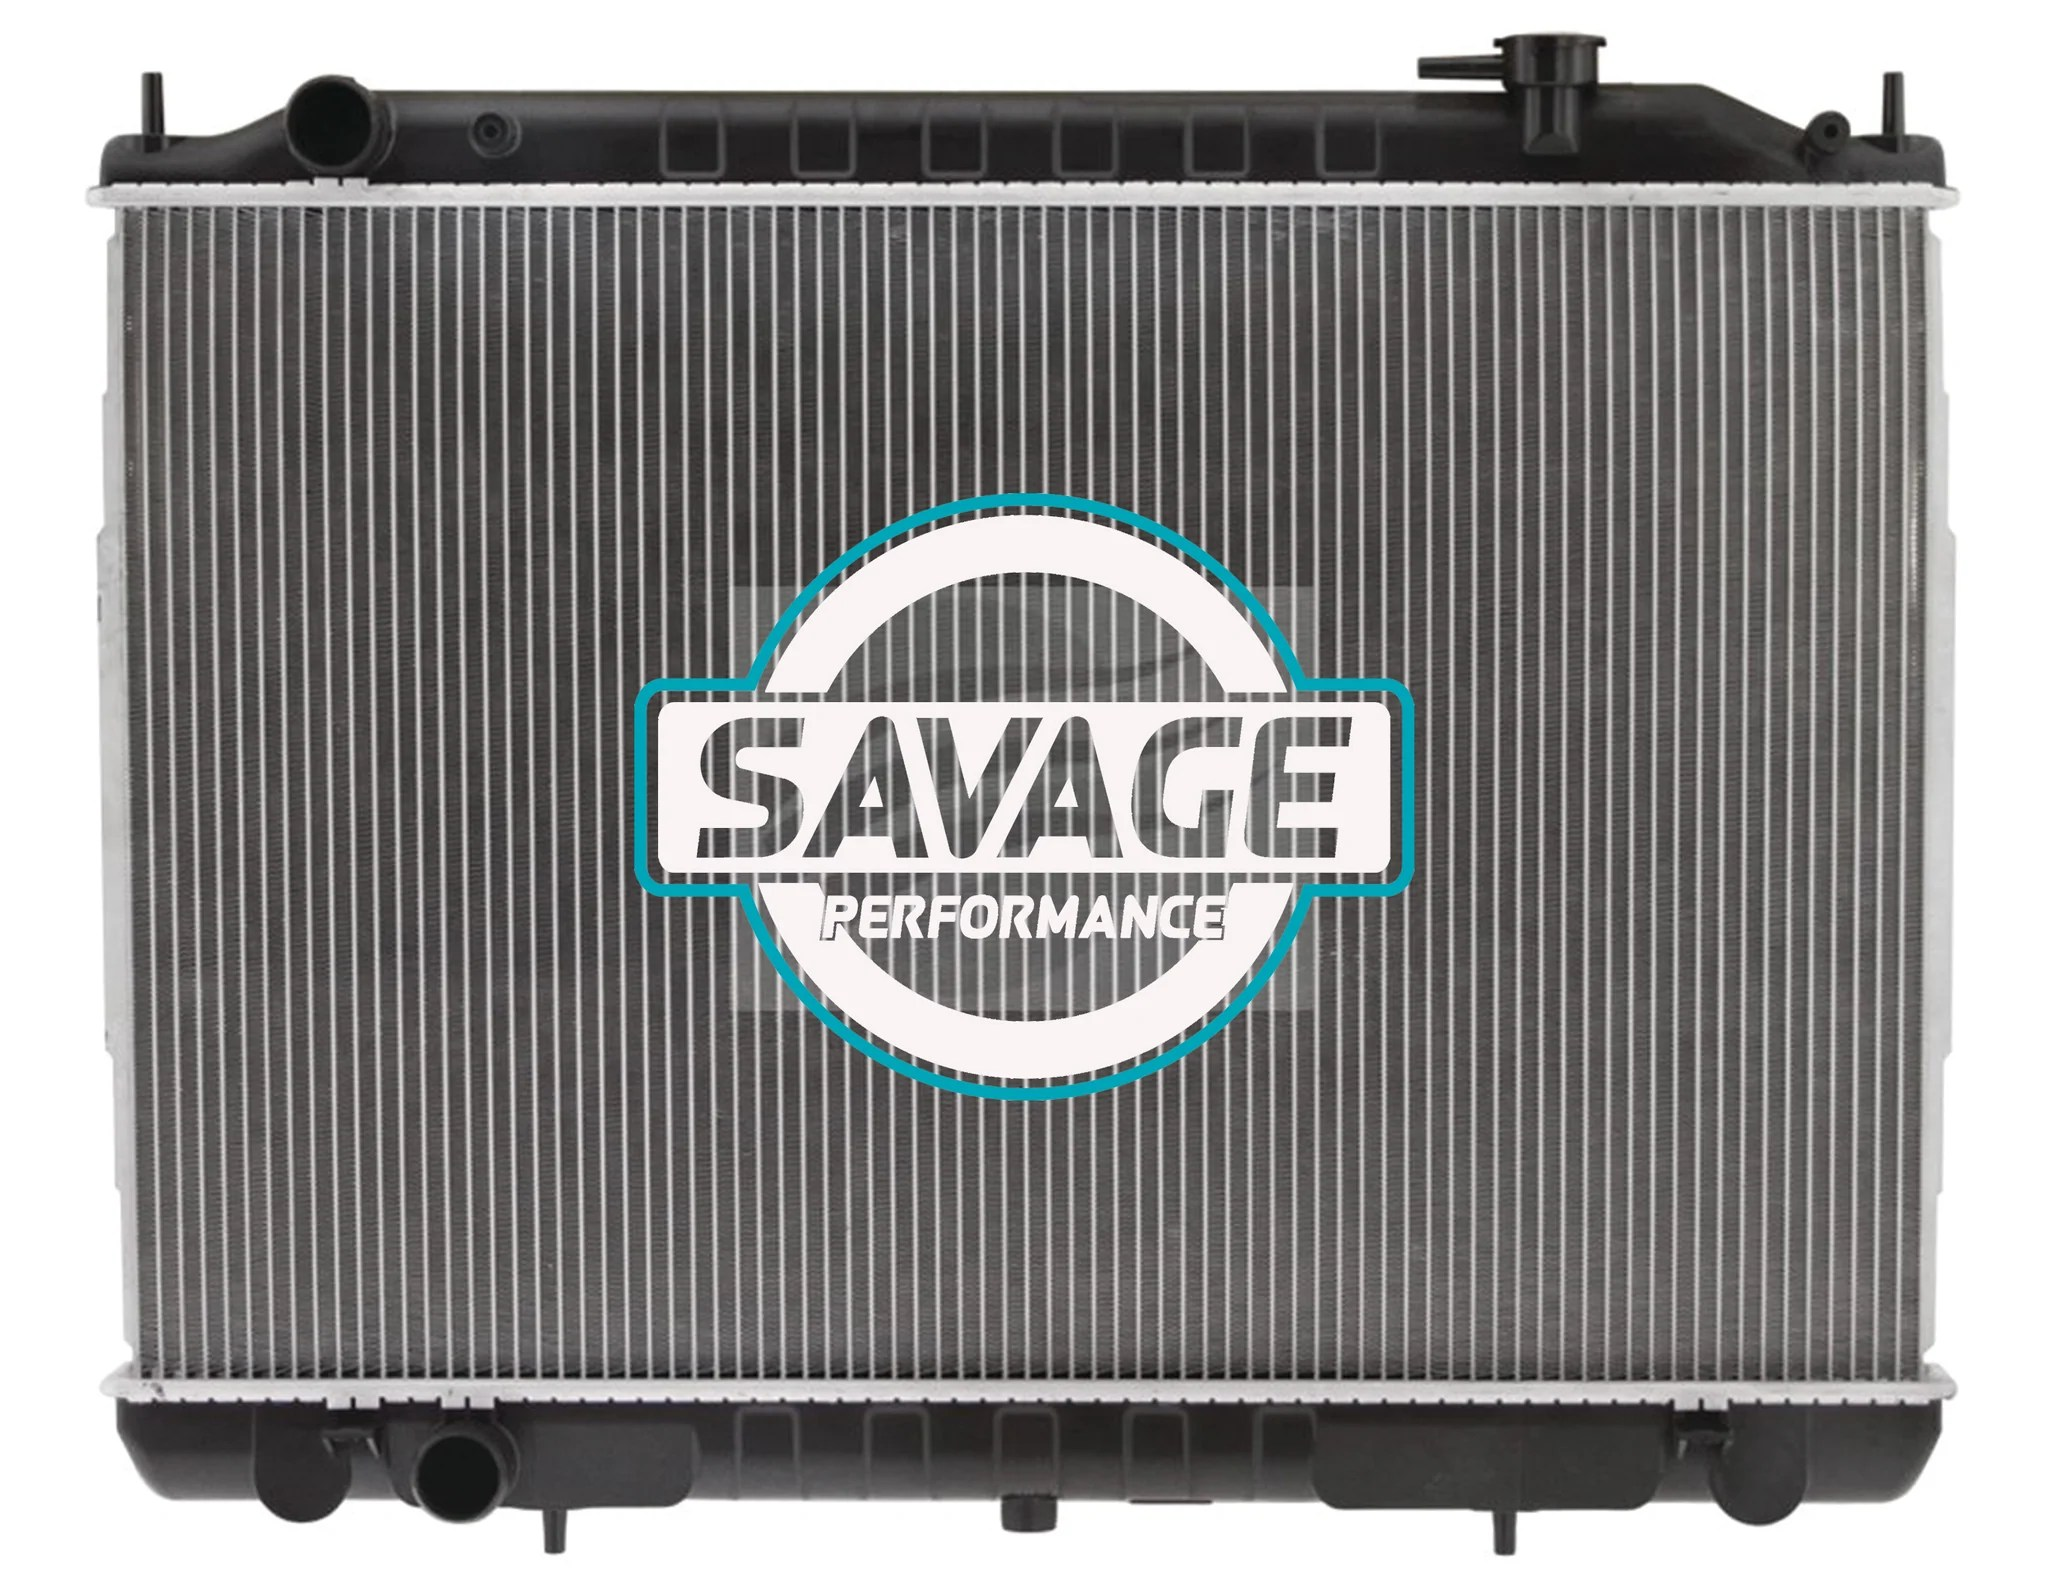 small resolution of nissan navara d22 2009 yd25 2 5l dsl radiator savage performance and spares